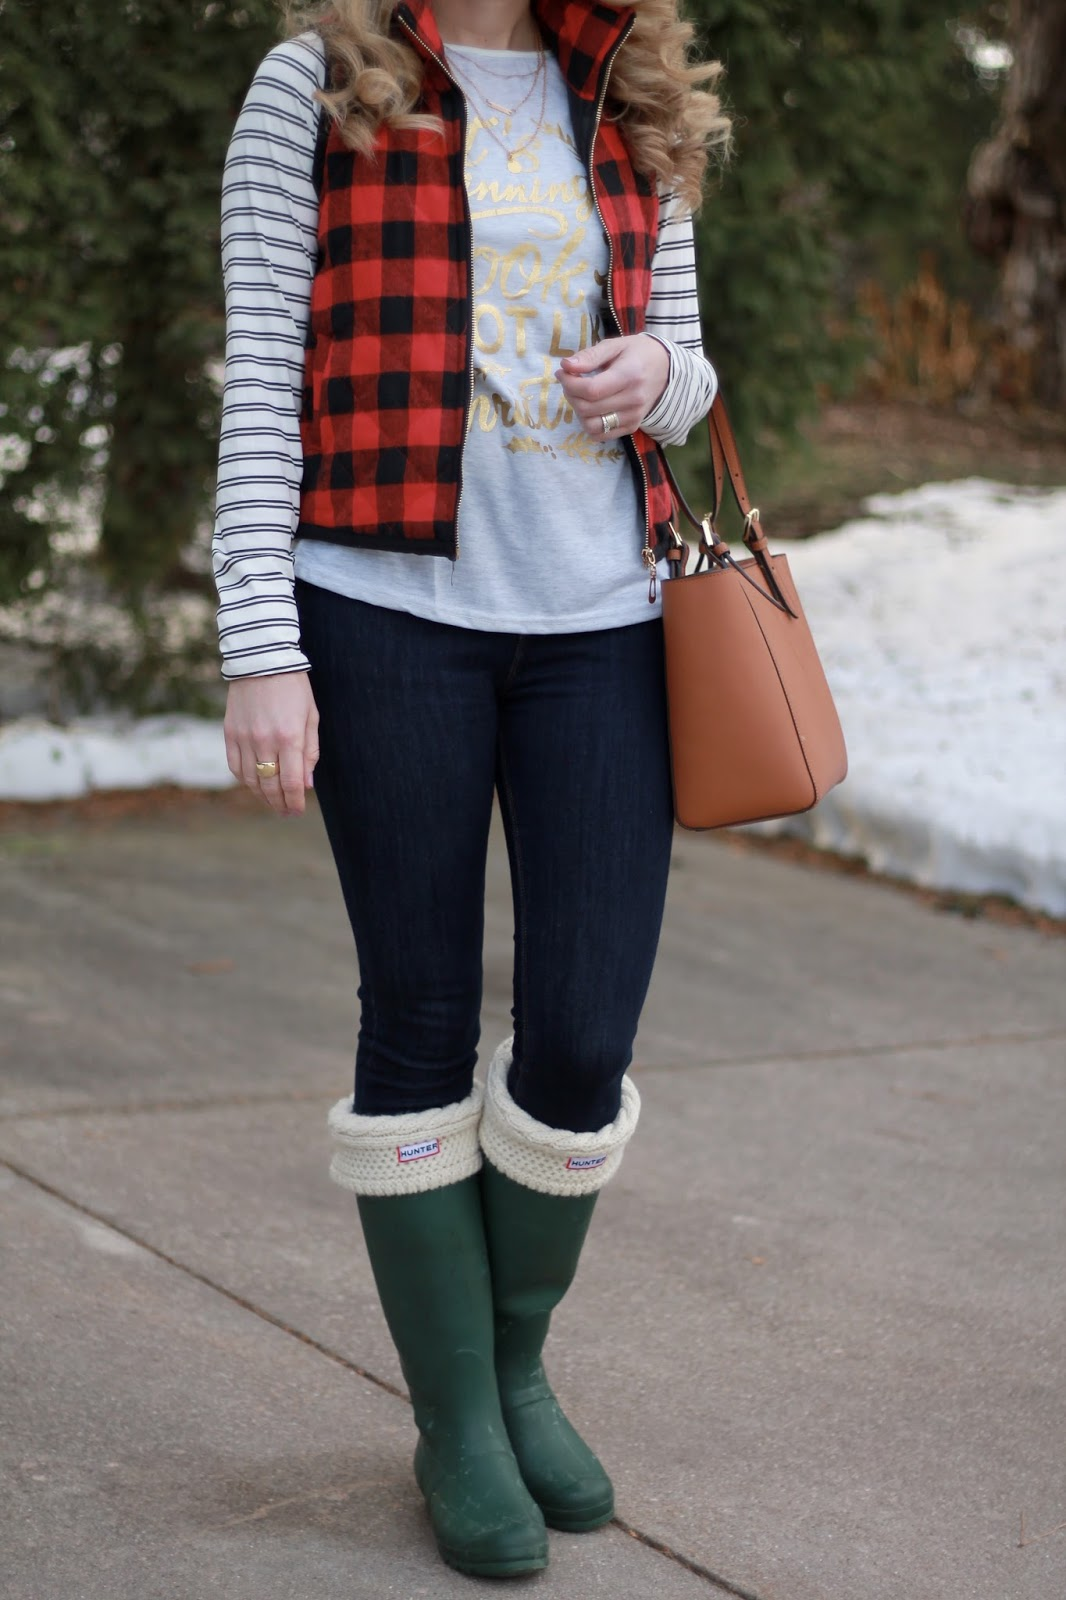 striped graphic tee, red plaid vest, Express dark skinny jeans, green Hunter boots, Tory Burch tote, layered necklace